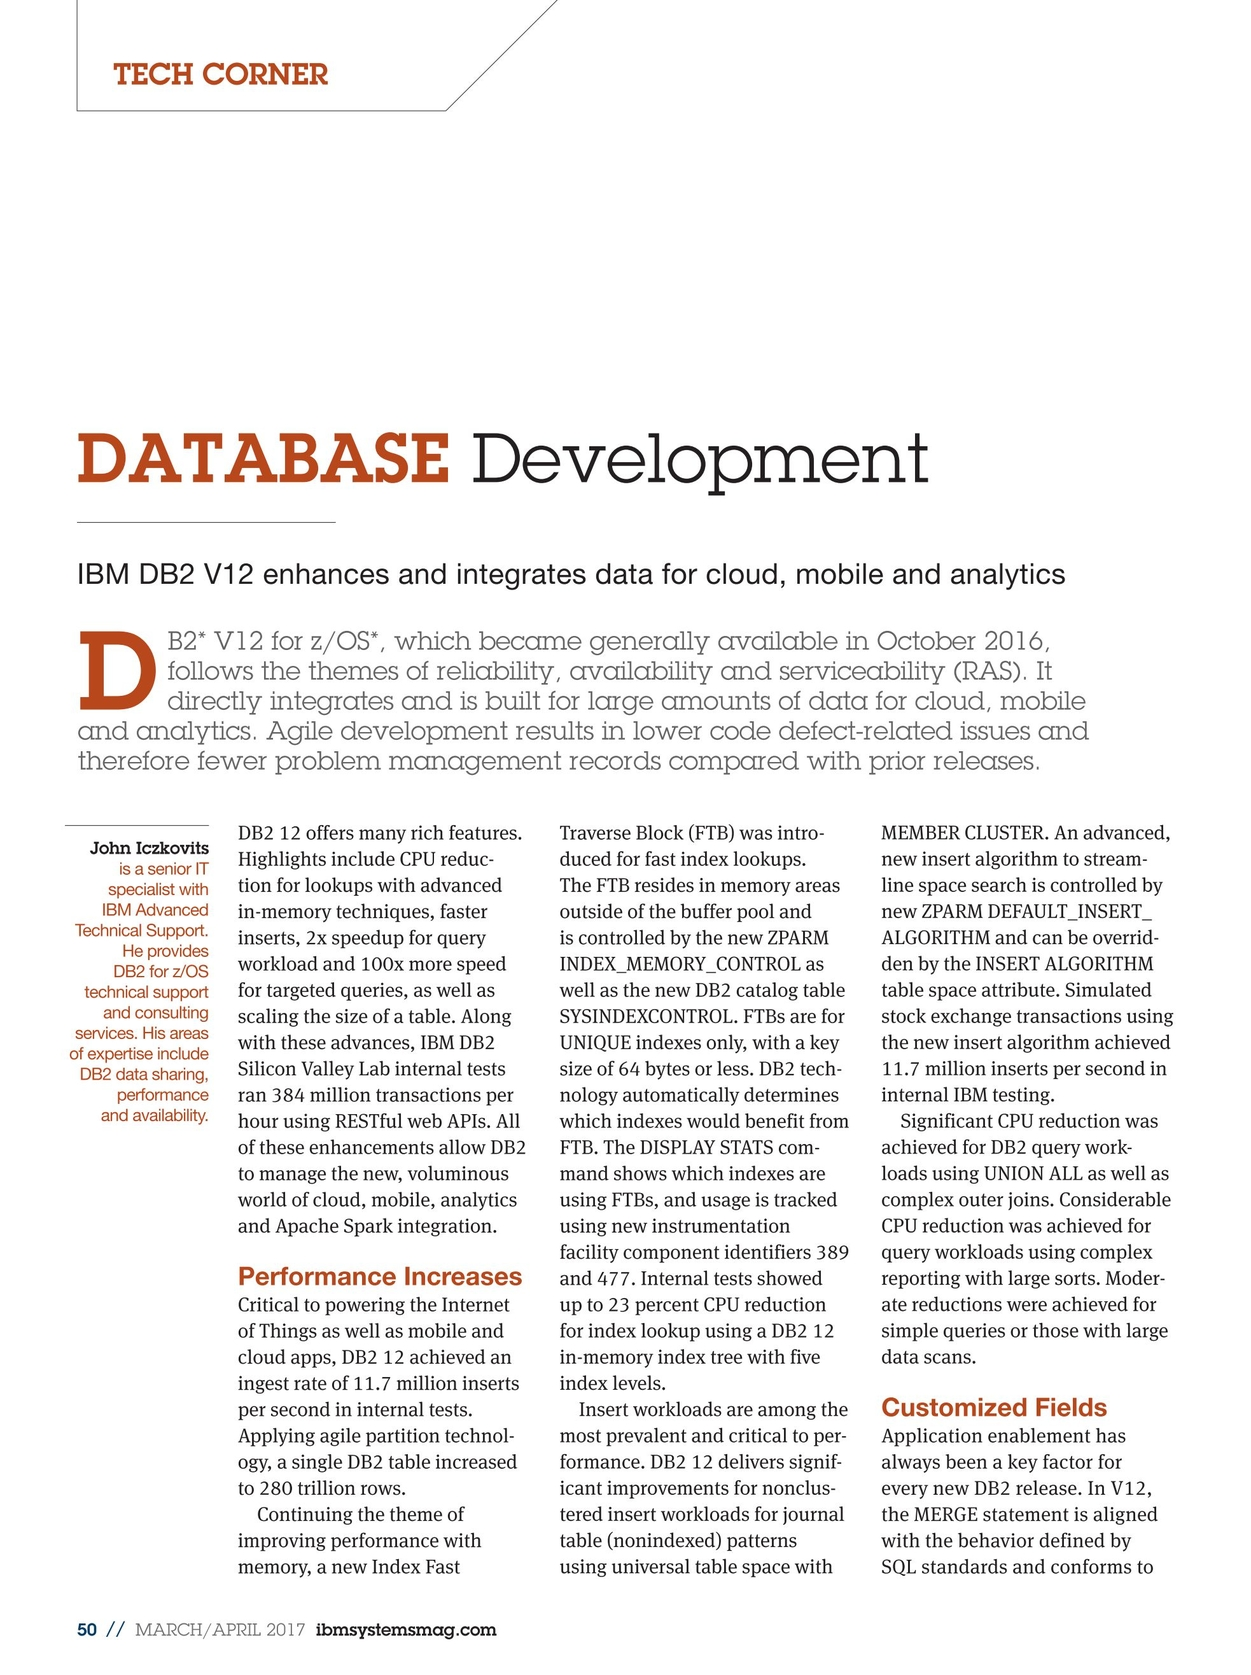 IBM Systems Magazine, Mainframe - March/April 2017